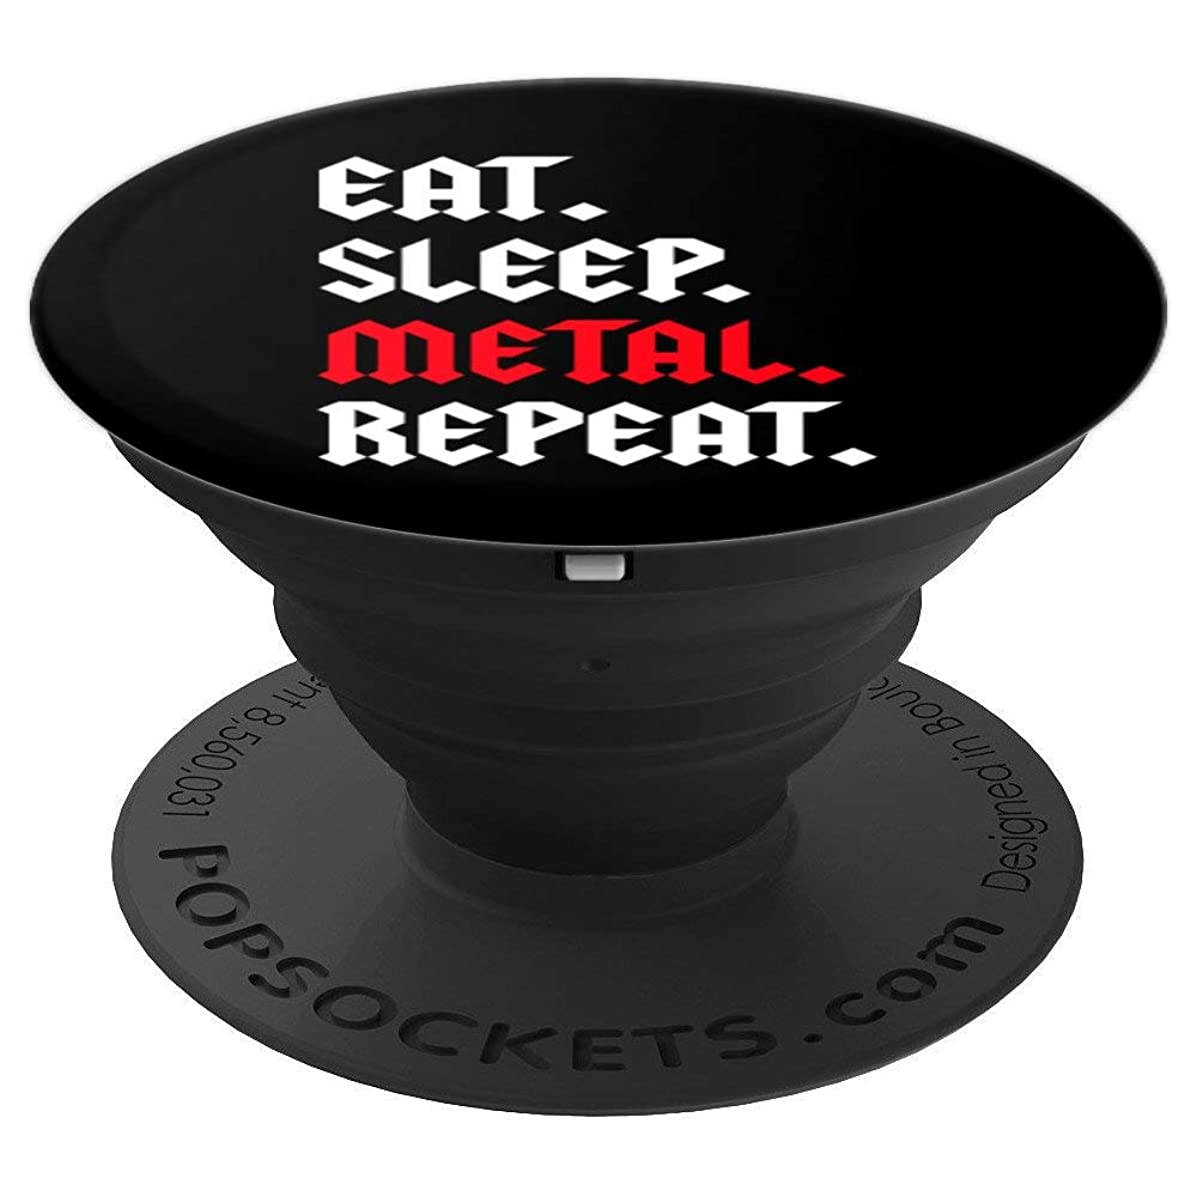 Eat Sleep Metal Repeat Gift Fan Lover Musician Phone Gadget - PopSockets Grip and Stand for Phones and Tablets